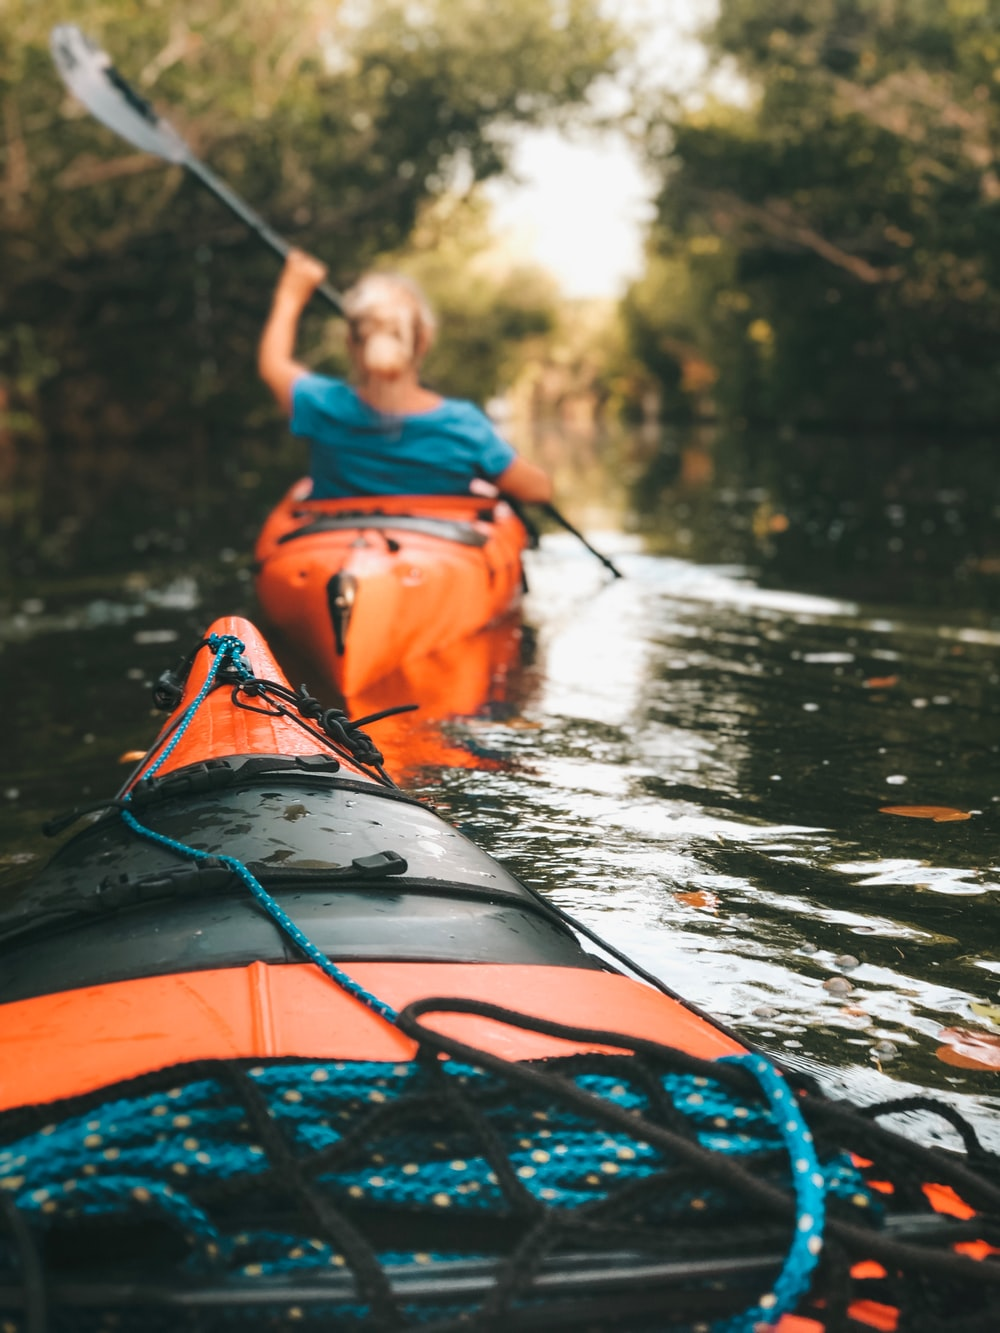 selective focus photography of woman riding kayak holding oar during daytime